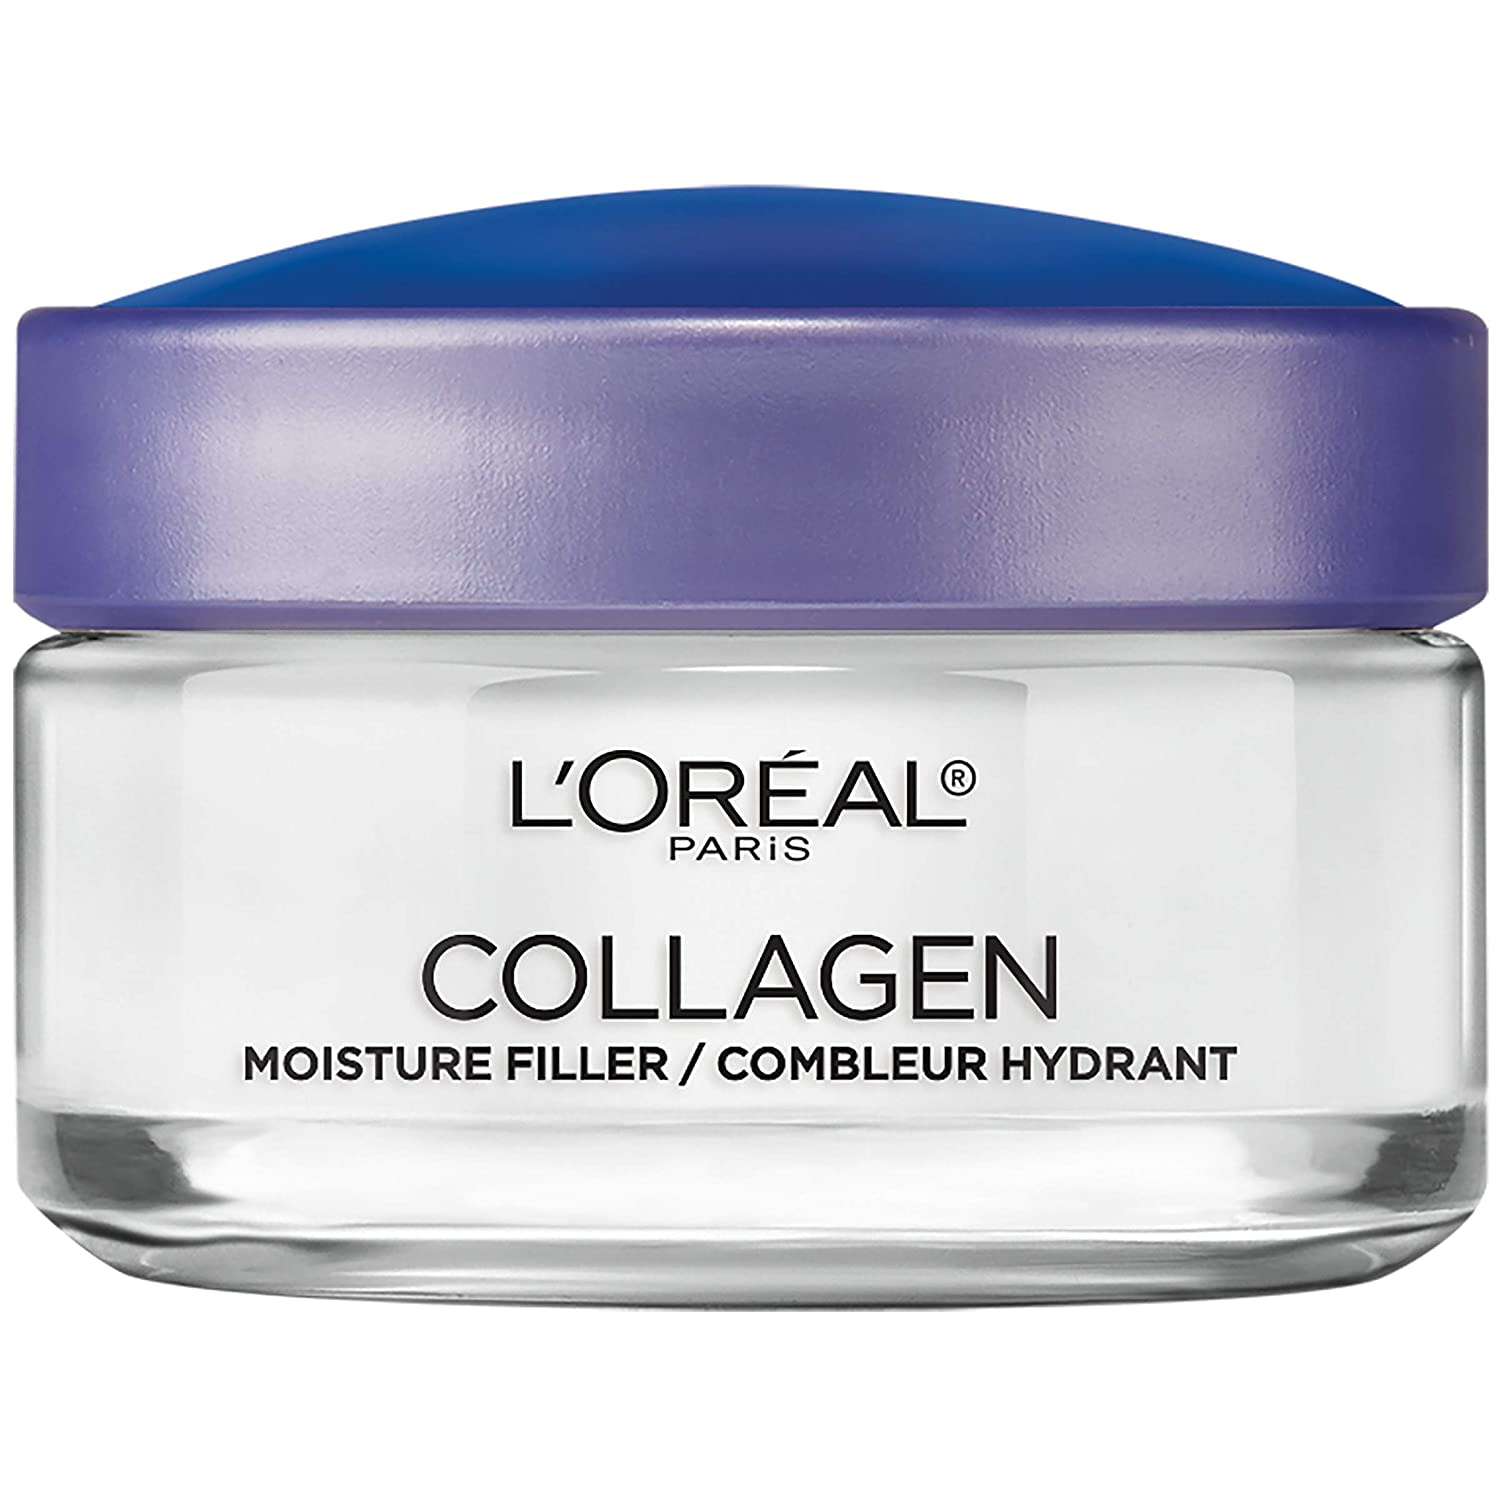 Collagen Face Moisturizer by L'Oreal Paris Skin Care Day and Night Cream Anti Aging Face Cream to Smooth Wrinkles I Non-Greasy I 1.7 oz.: Health & Personal Care